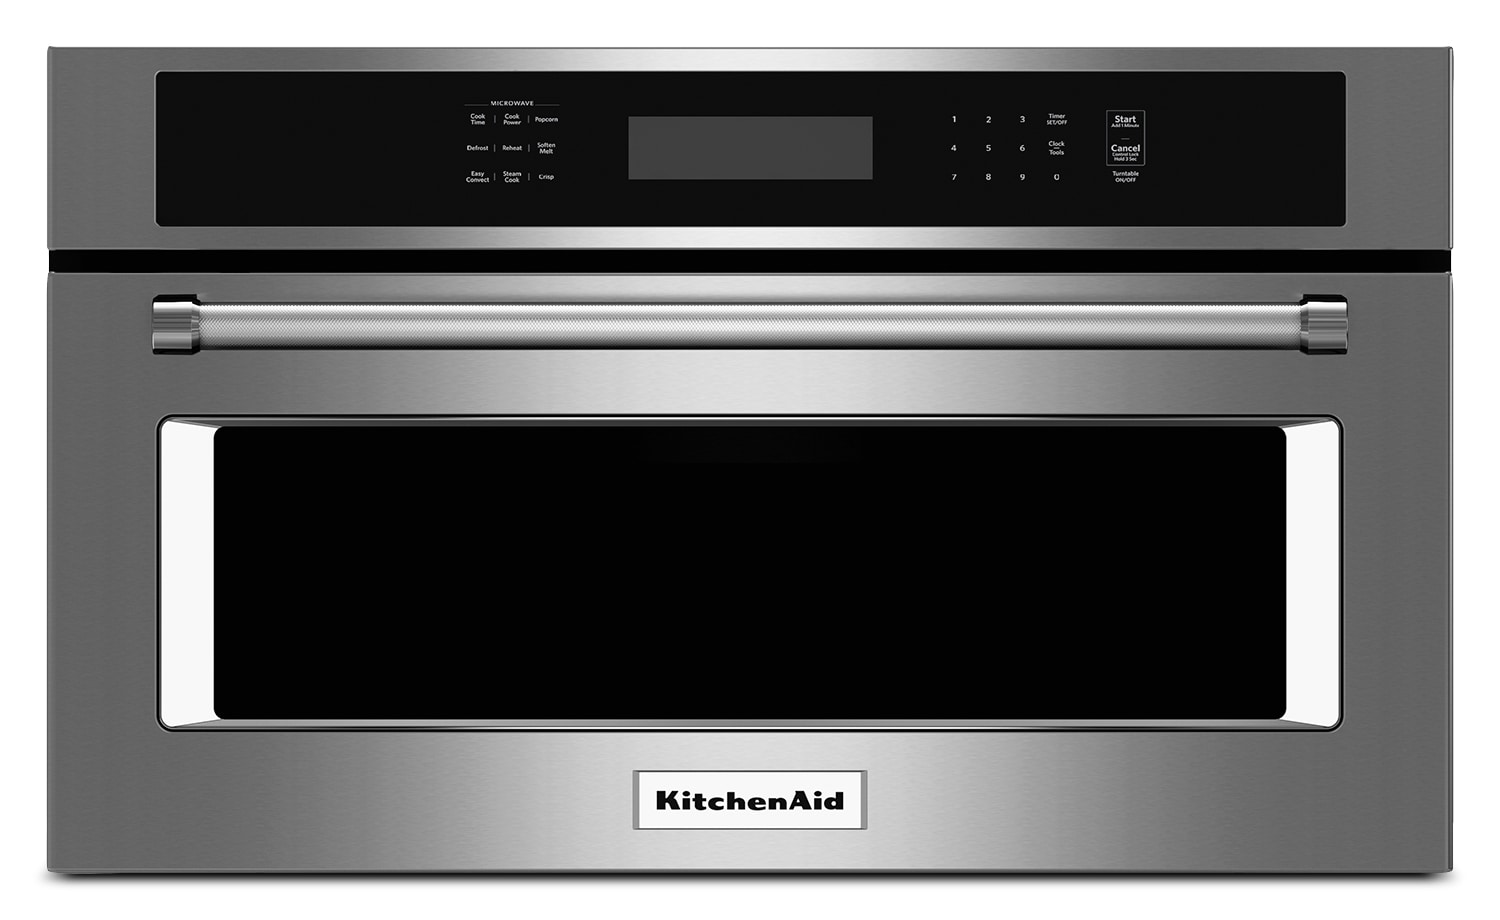 Cooking Products - KitchenAid Stainless Steel Built-In Microwave (1.4 Cu. Ft.) - KMBP107ESS